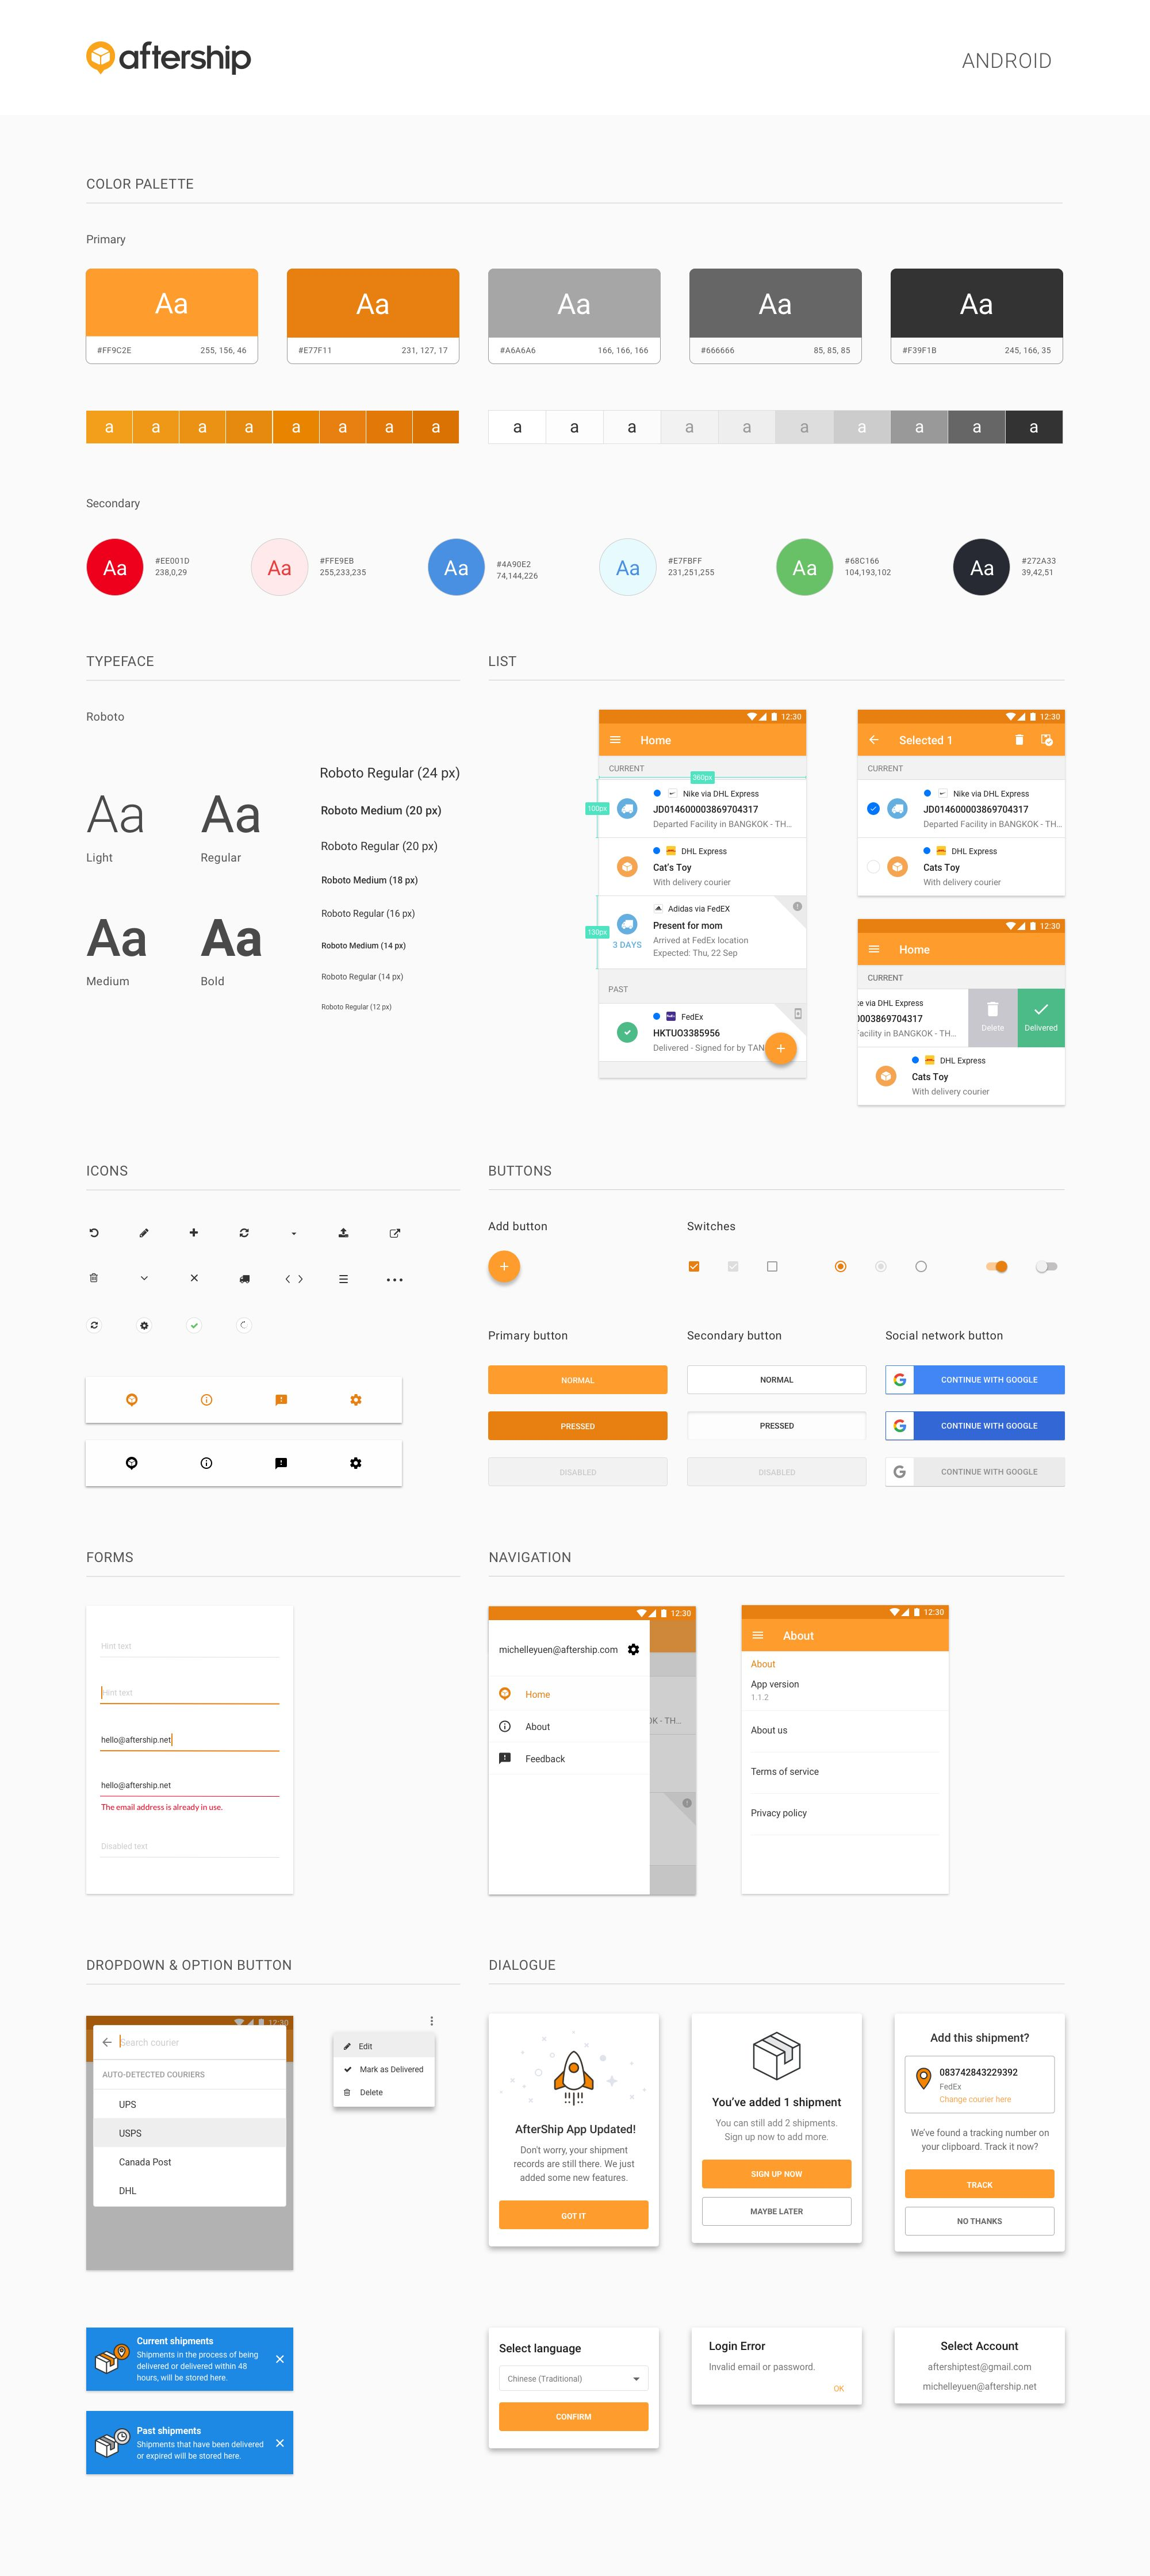 Ui ux clean android visual style guides user interface design und app ui - Android app ideen ...